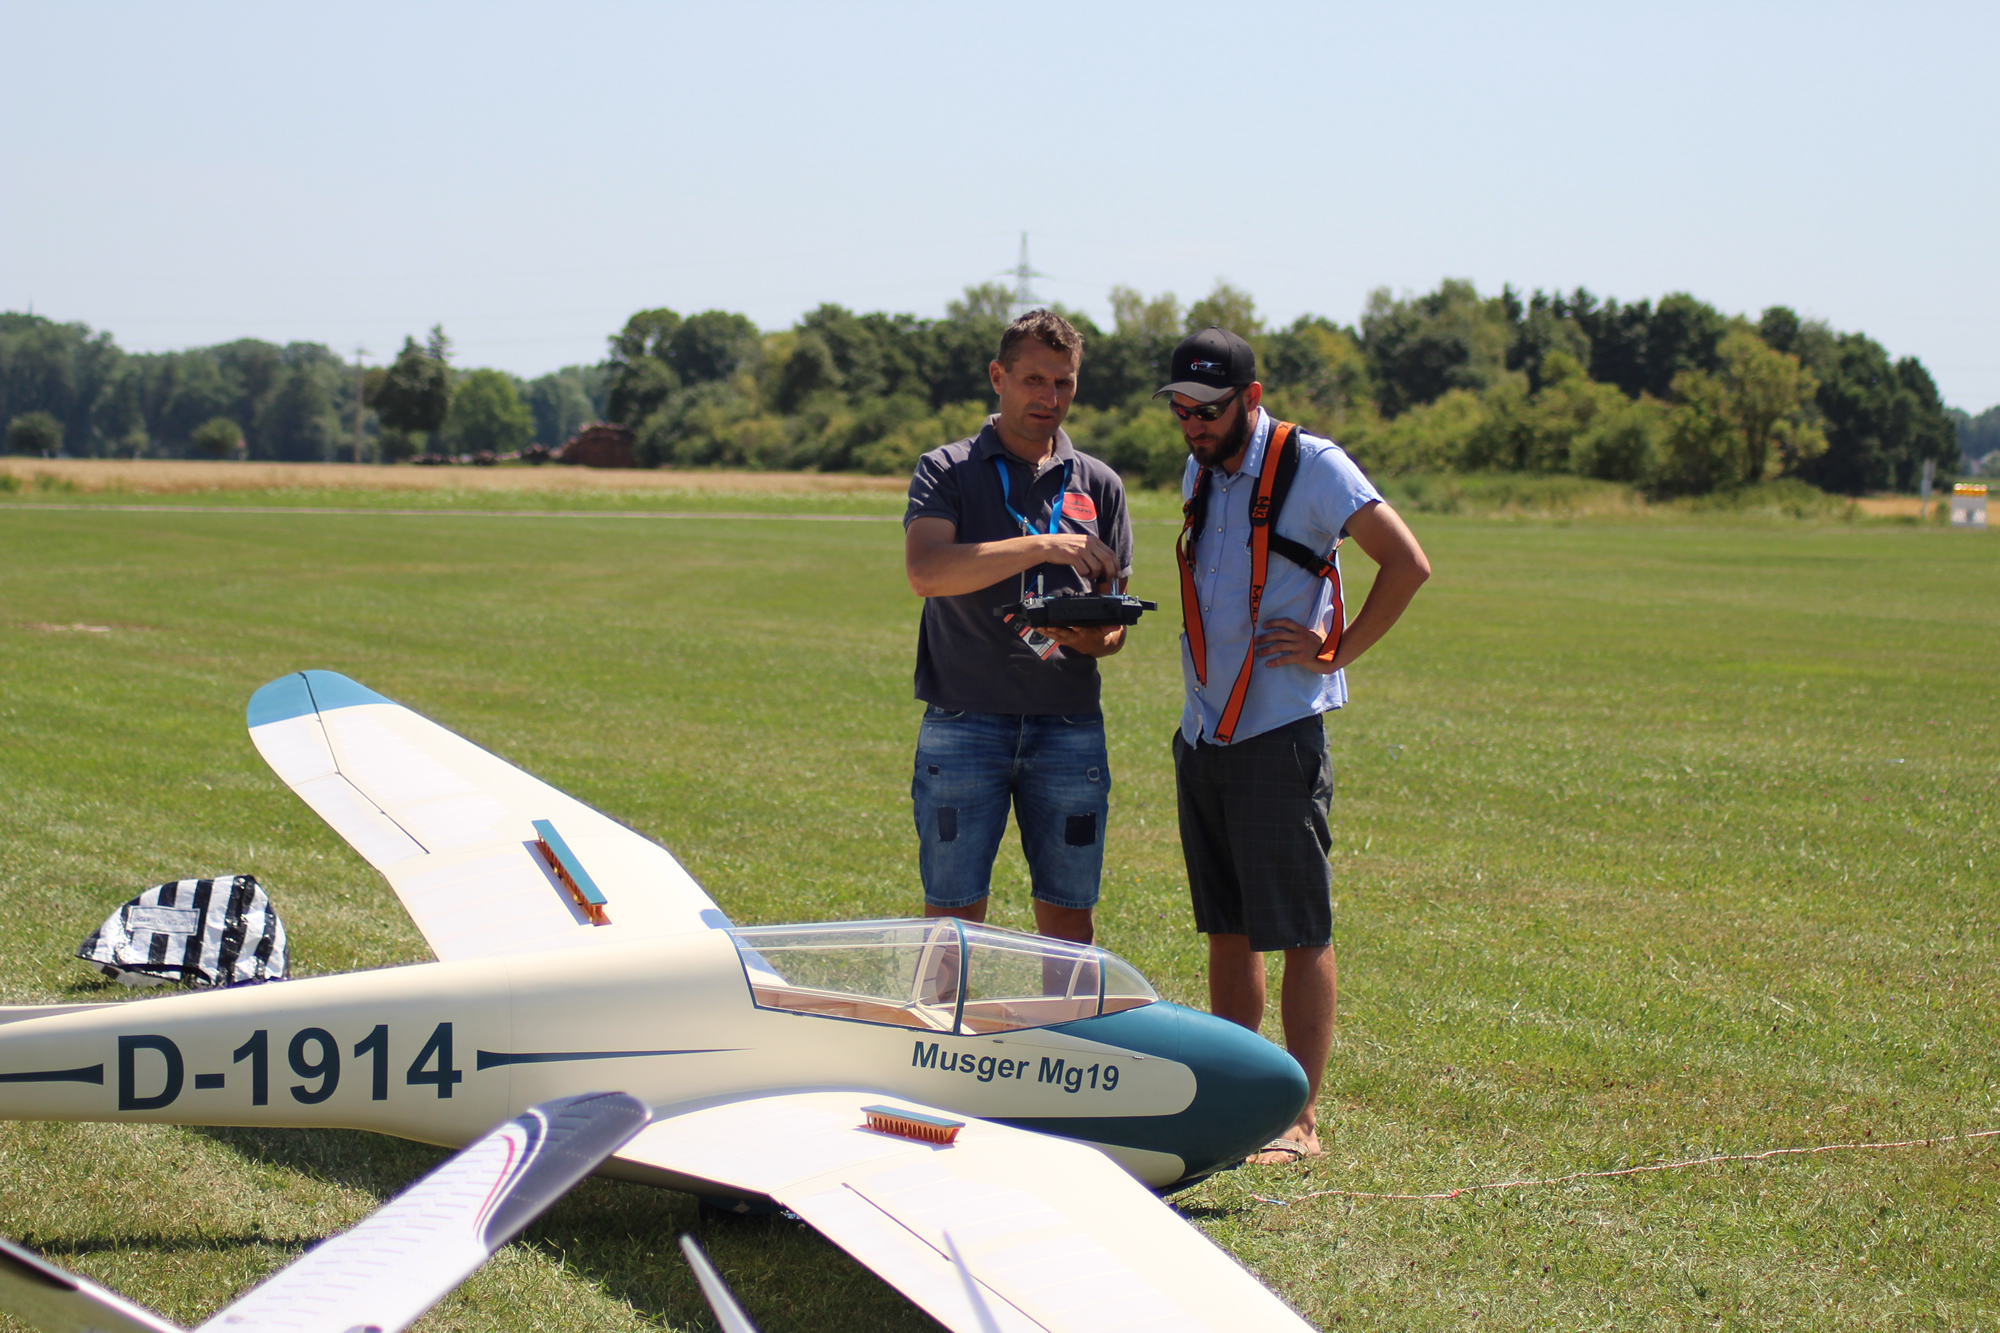 Musger Mg 19a Tomahawk Aviation